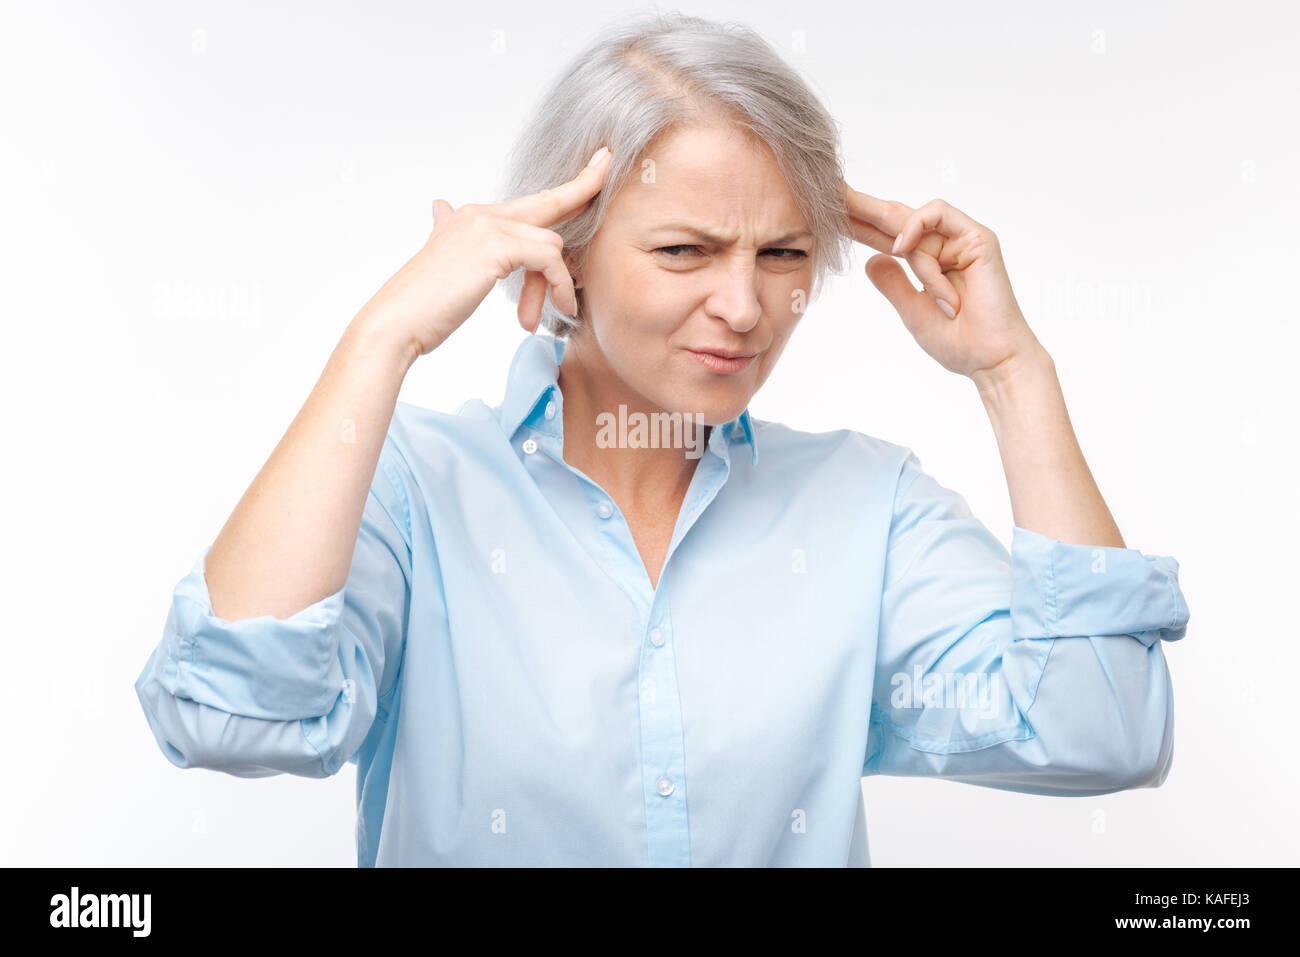 Irritated grey-haired woman pressing fingers to temples - Stock Image